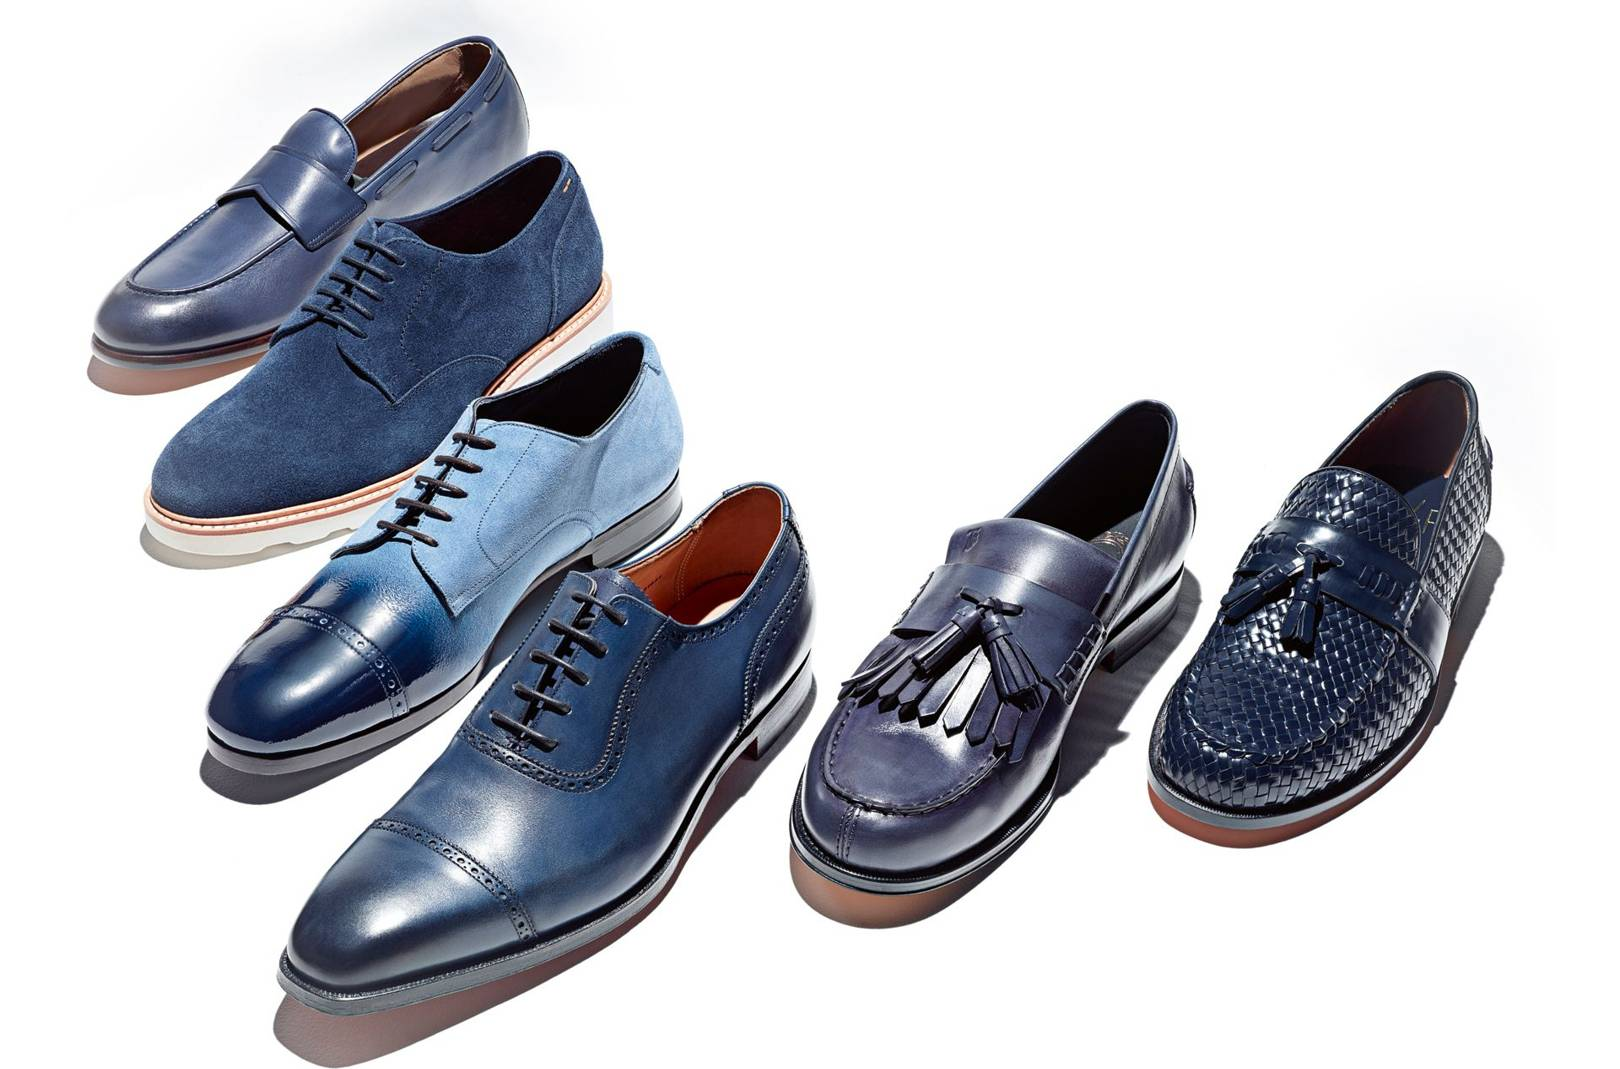 2. Some Basic Advice About the Basics The one shoe every man should own is a black lace-up. You can dress it up or dress it down; it'll work with everything from jeans to suits.